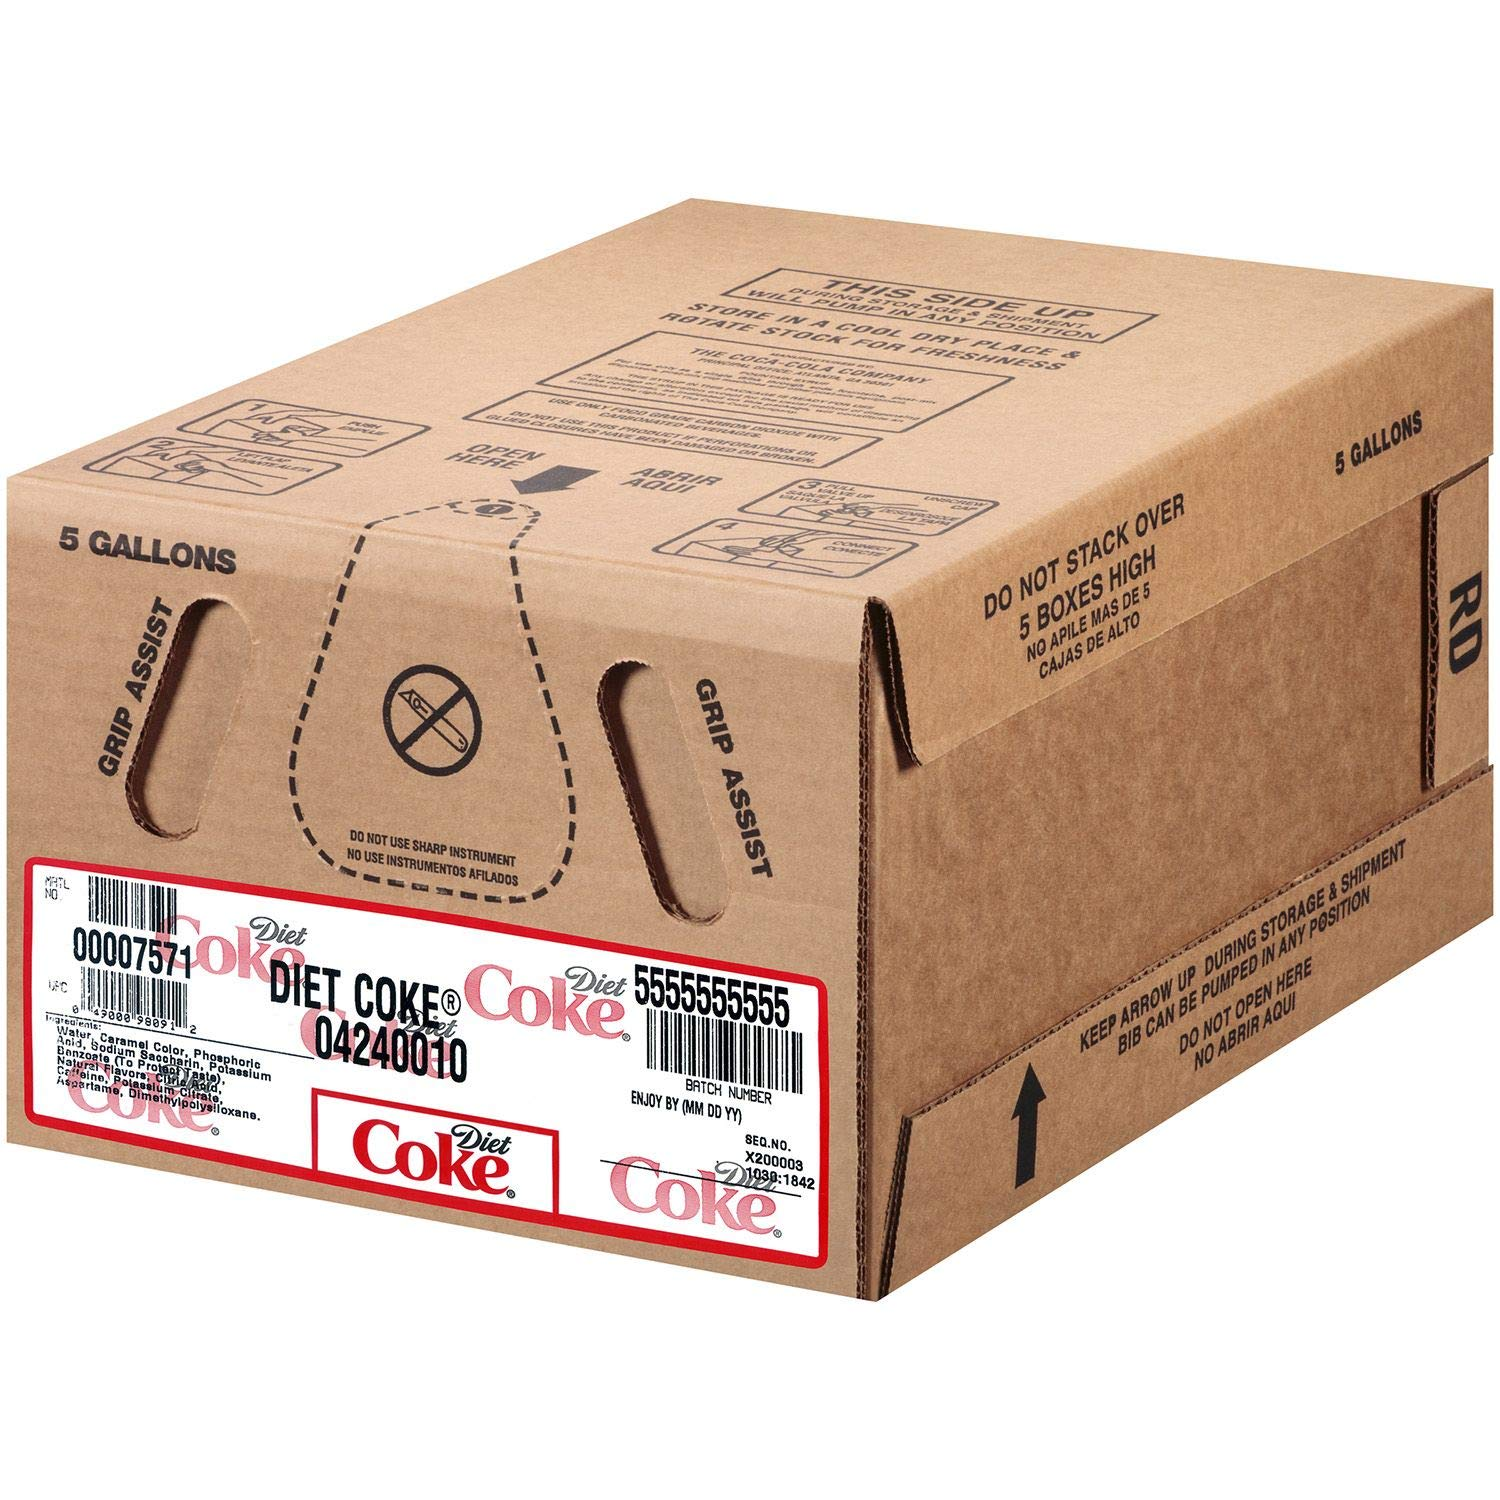 Diet Coke Bag-In Box Fountain Syrup 5 gal. A1